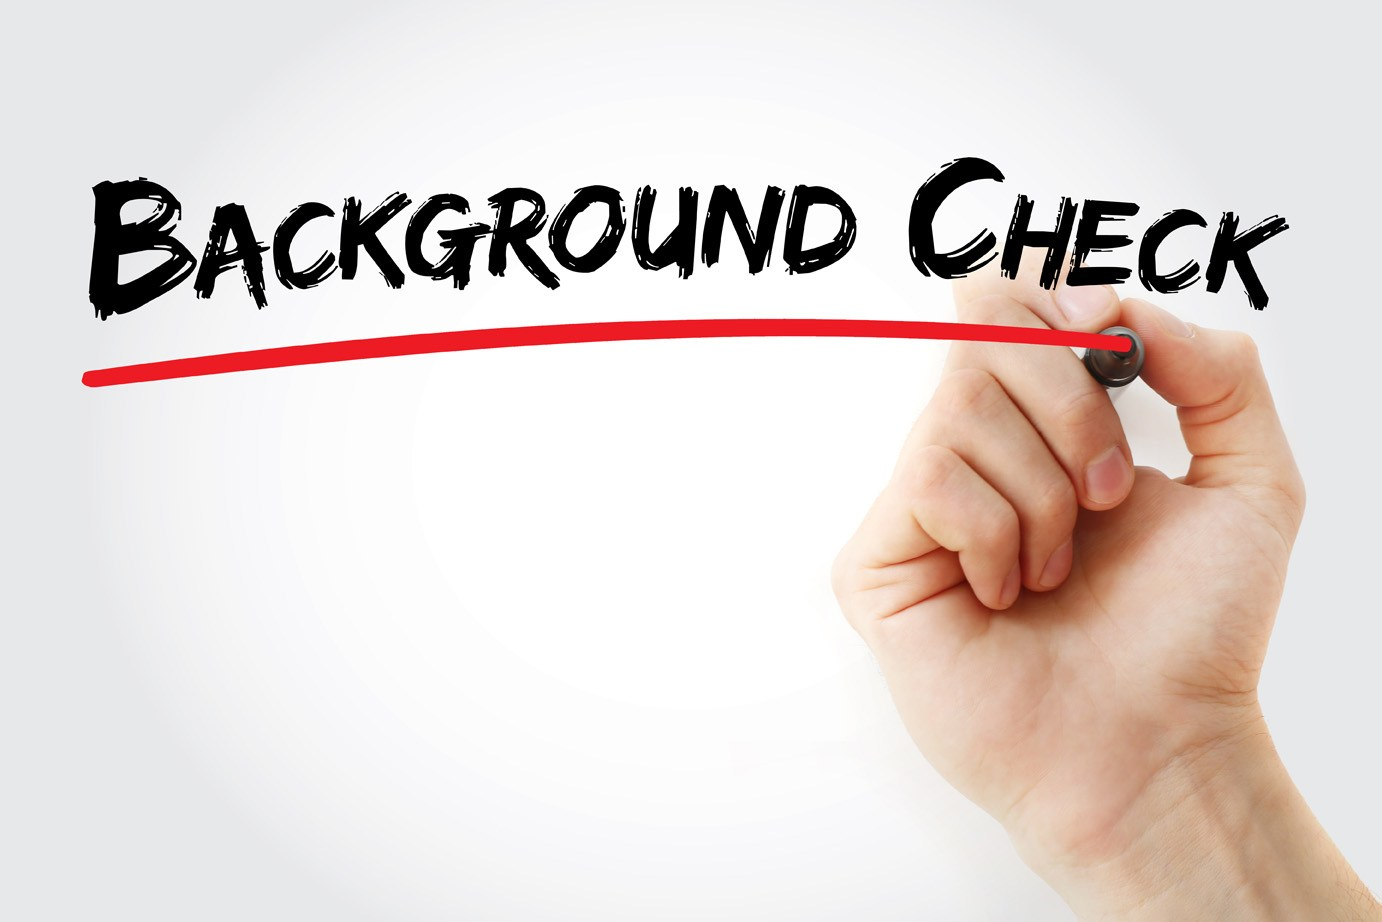 Check for Past Physical Offender History with Free Background Check Websites